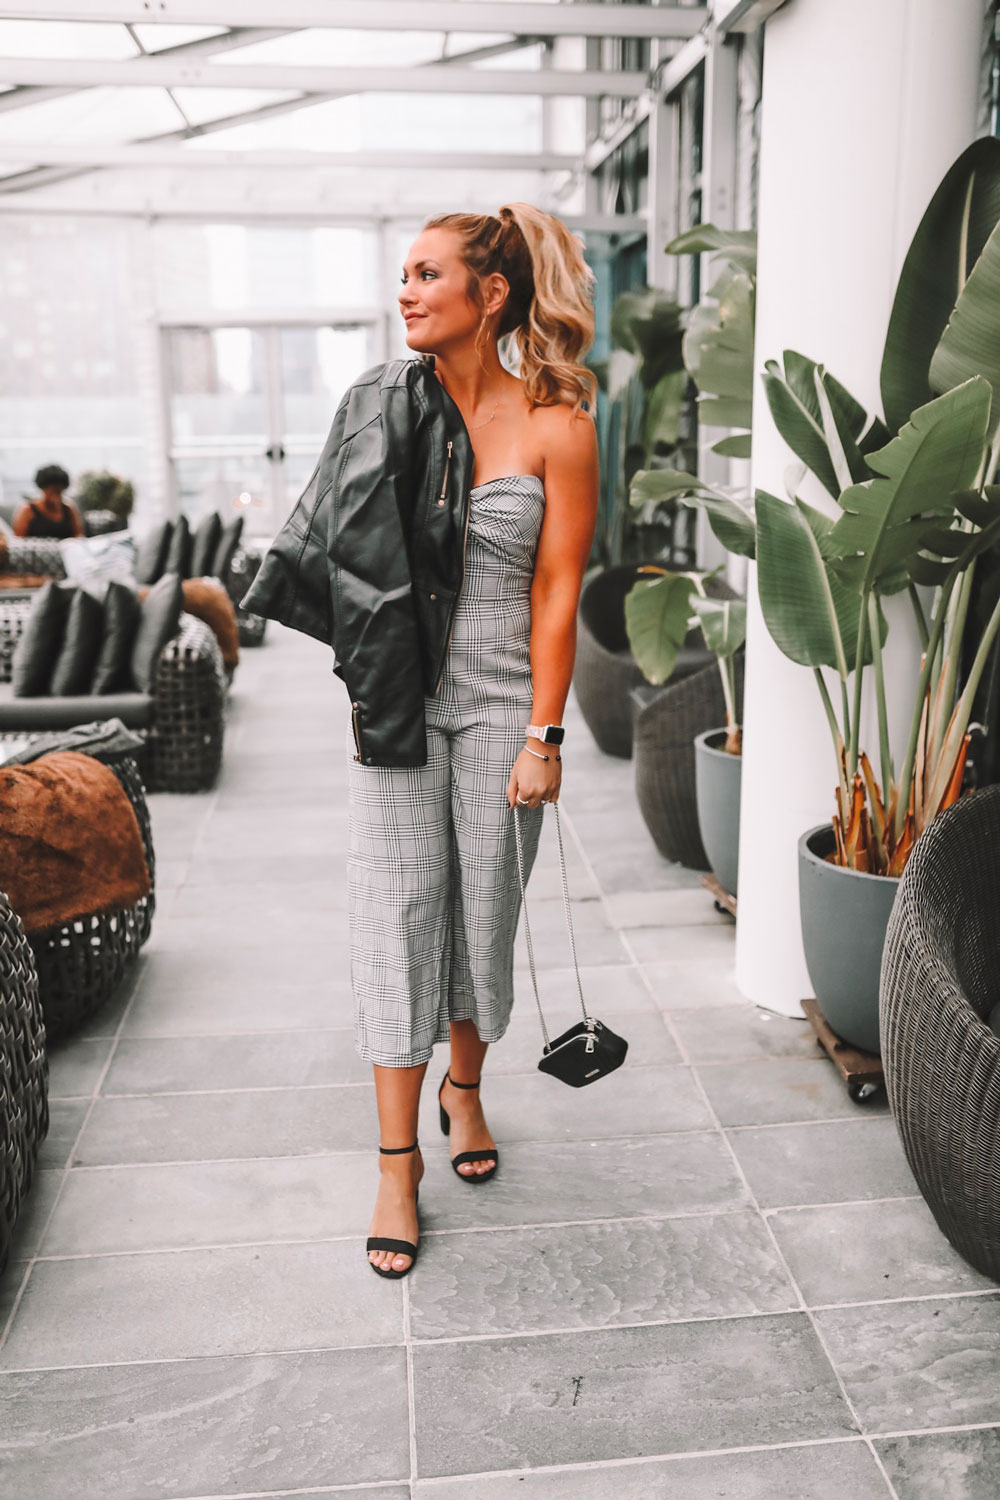 OKC blogger Amanda Martin dresses up a plaid jumpsuit for Fashion Week